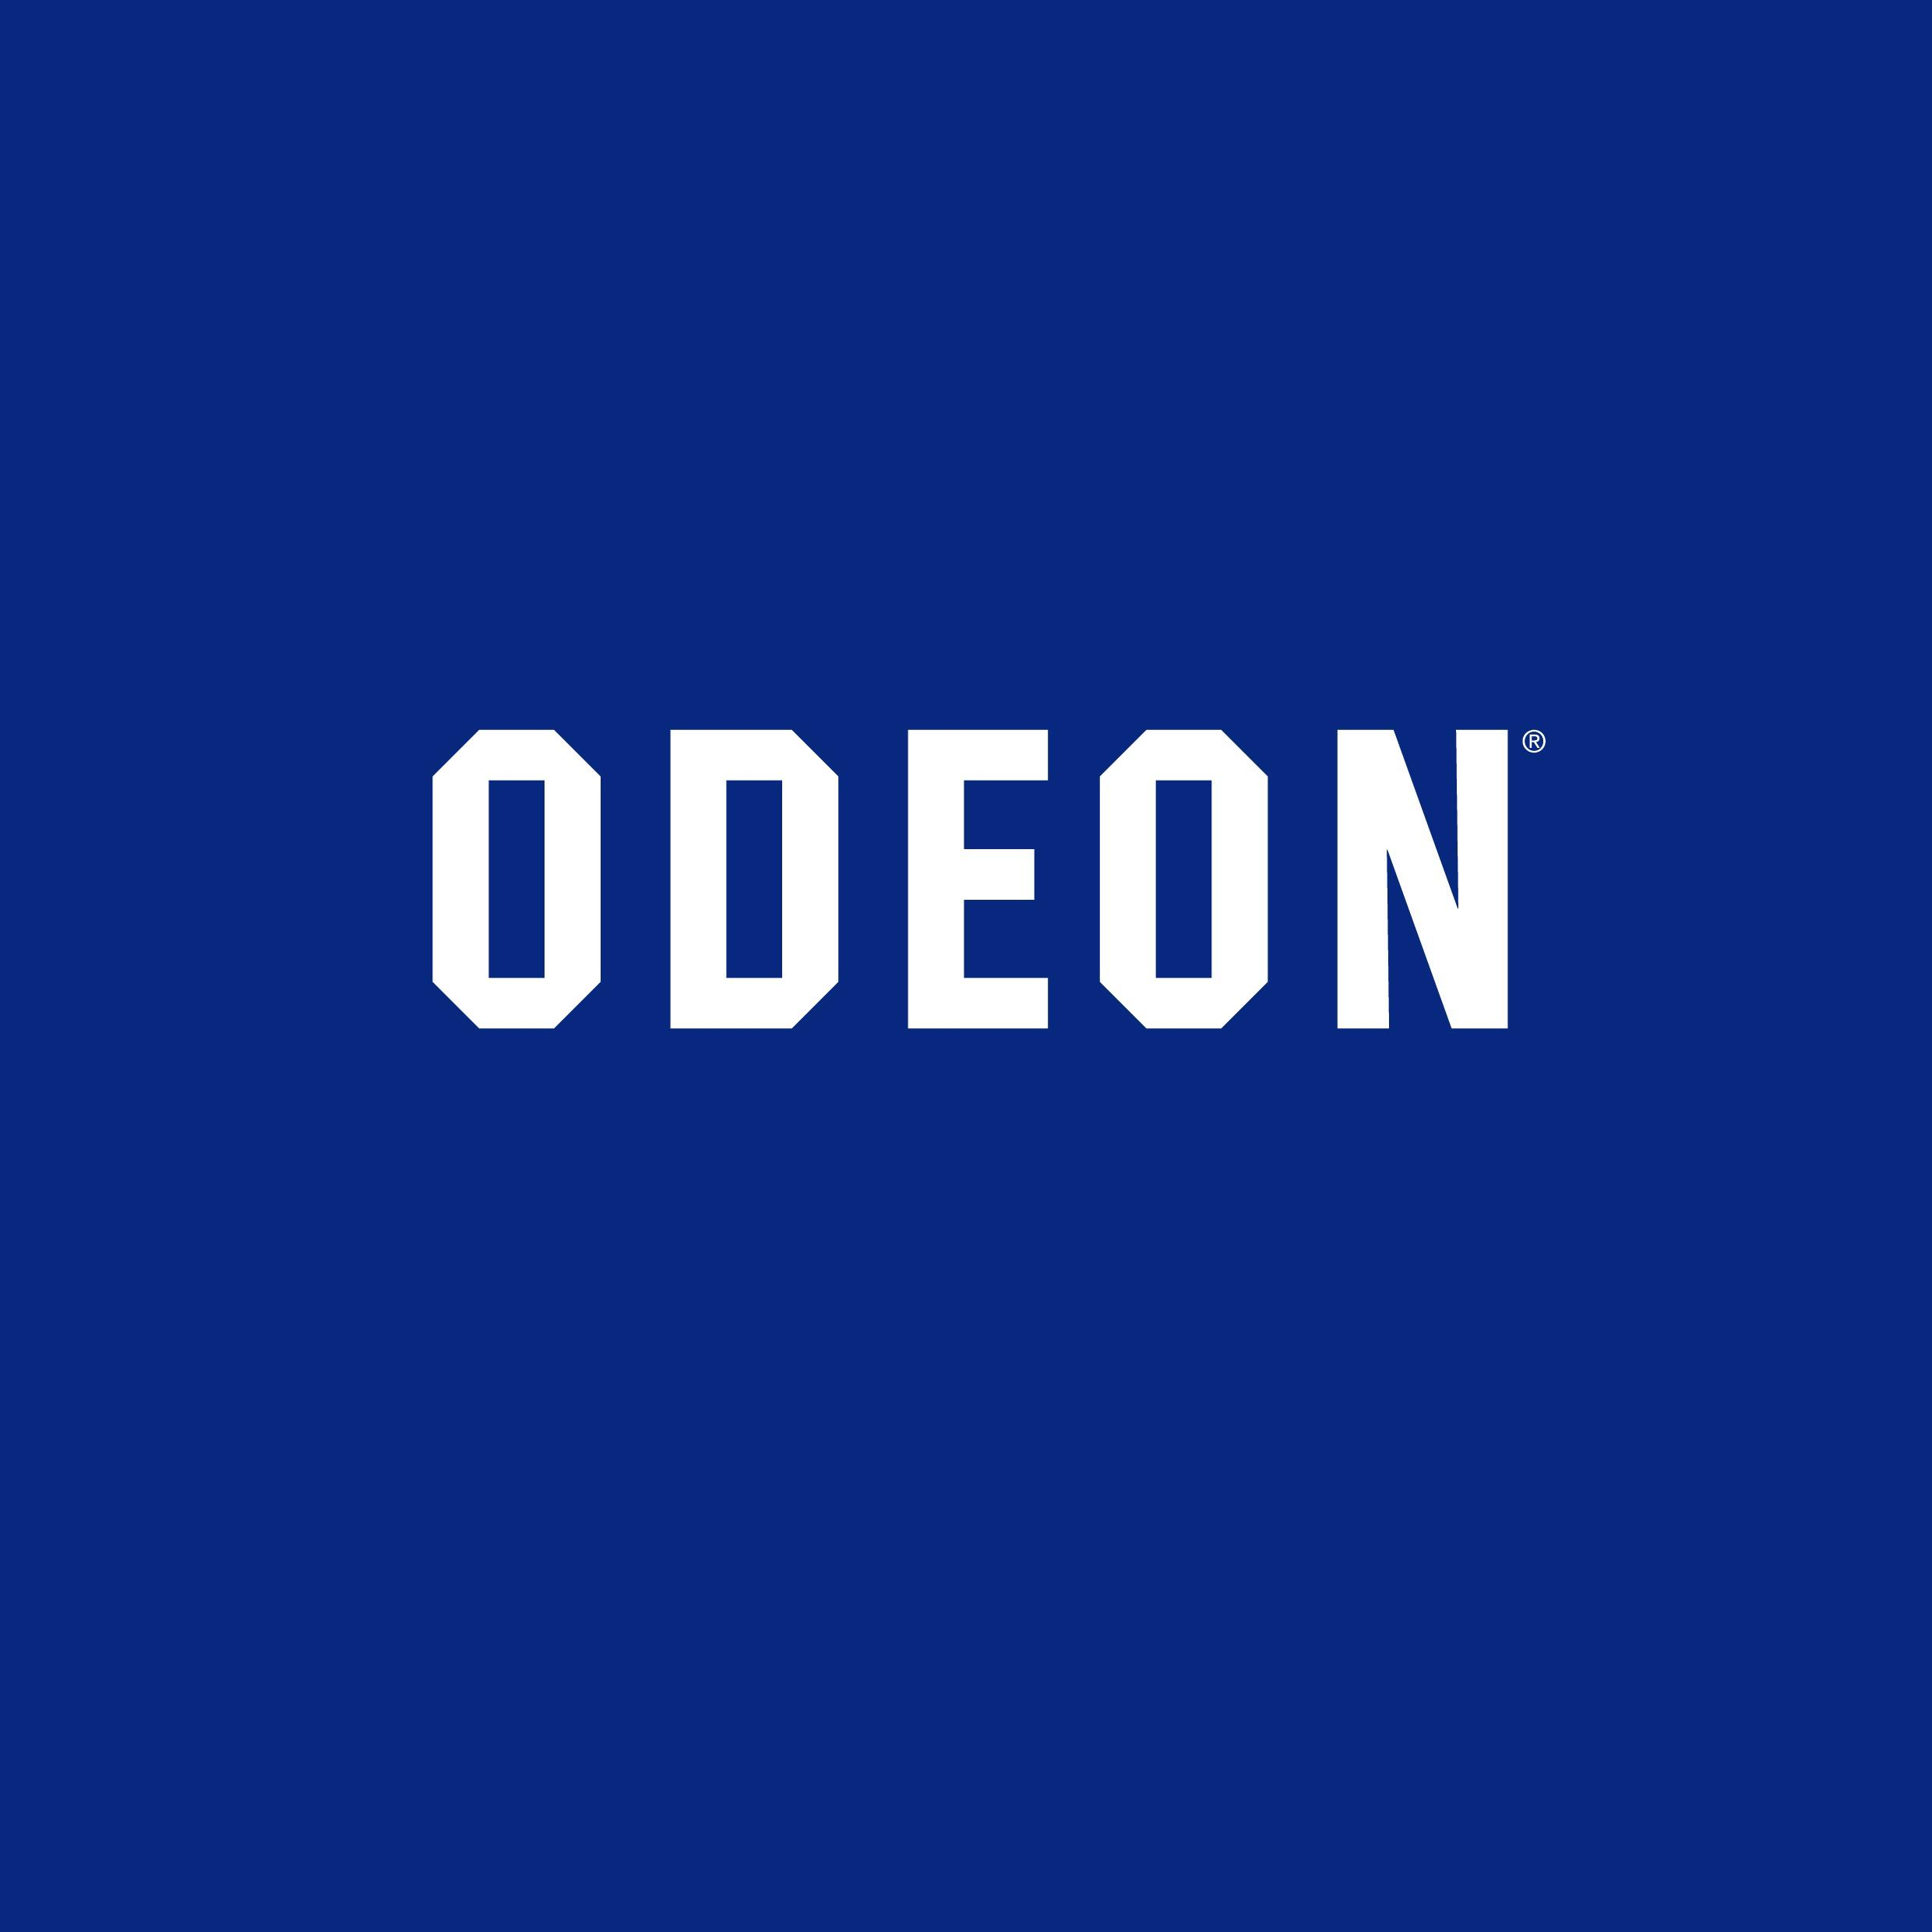 ODEON Southampton - Southampton, Hampshire SO15 1RE - 03330 144501 | ShowMeLocal.com